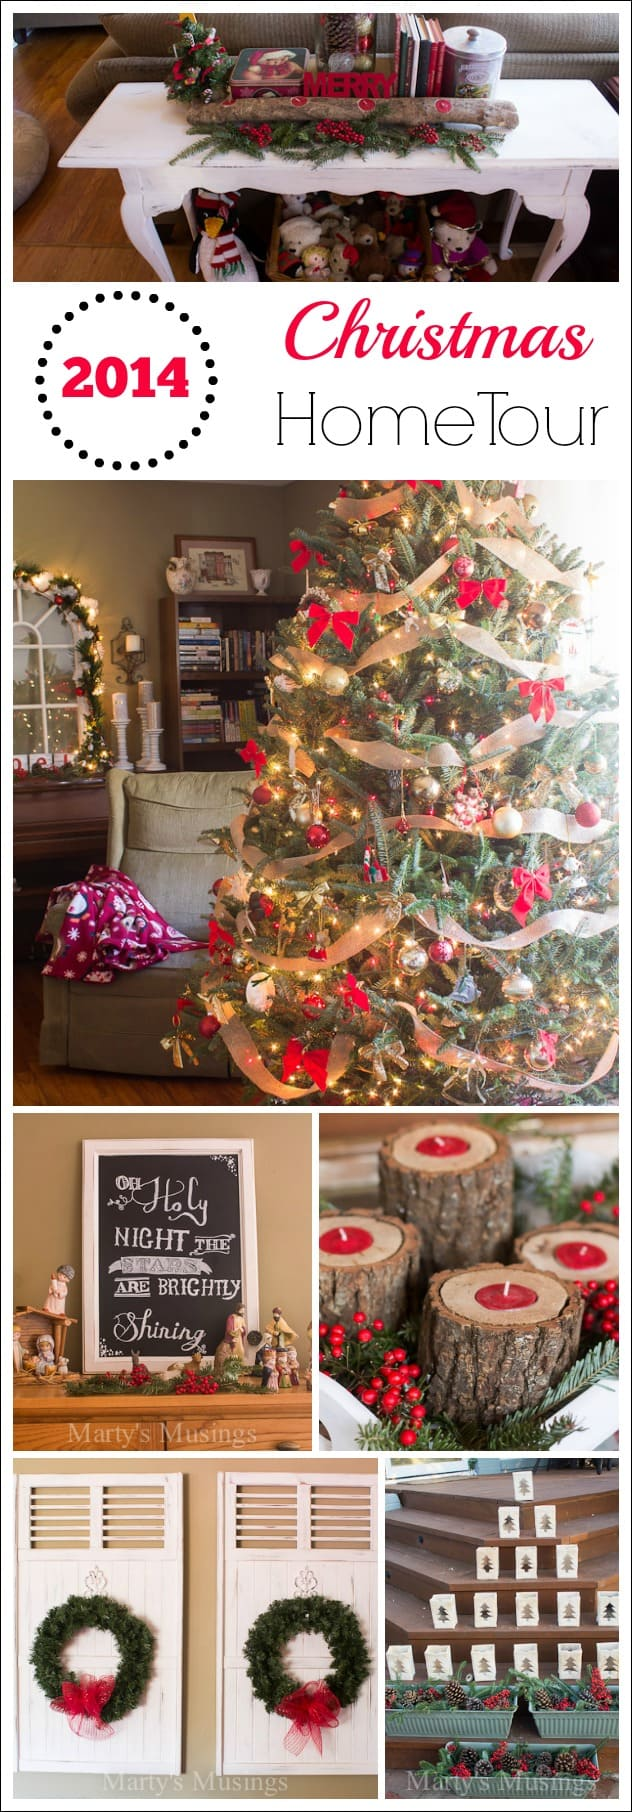 A beautiful home doesn't have to be large or expensive to be charming.  This Christmas home tour is filled with thrifty home decor and easy DIY crafts and projects!